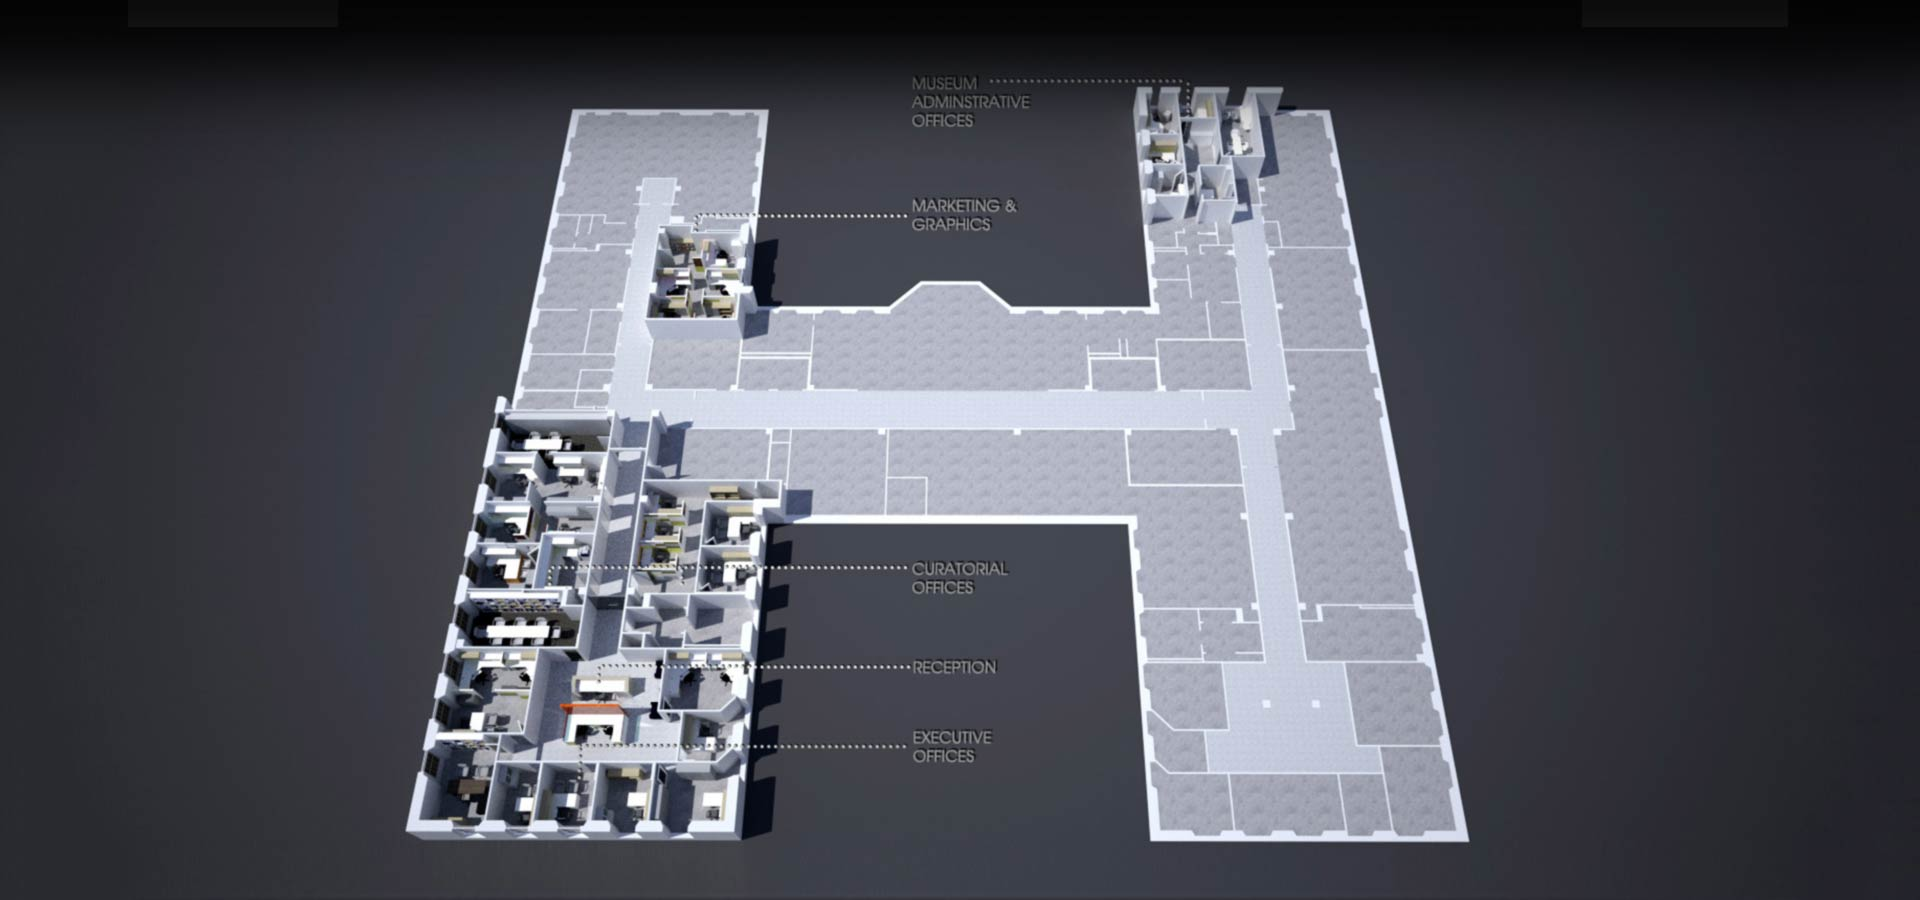 commercial architecture blueprint for el museo overview and architecture for nyc department of buildings zones and code compliant architecture